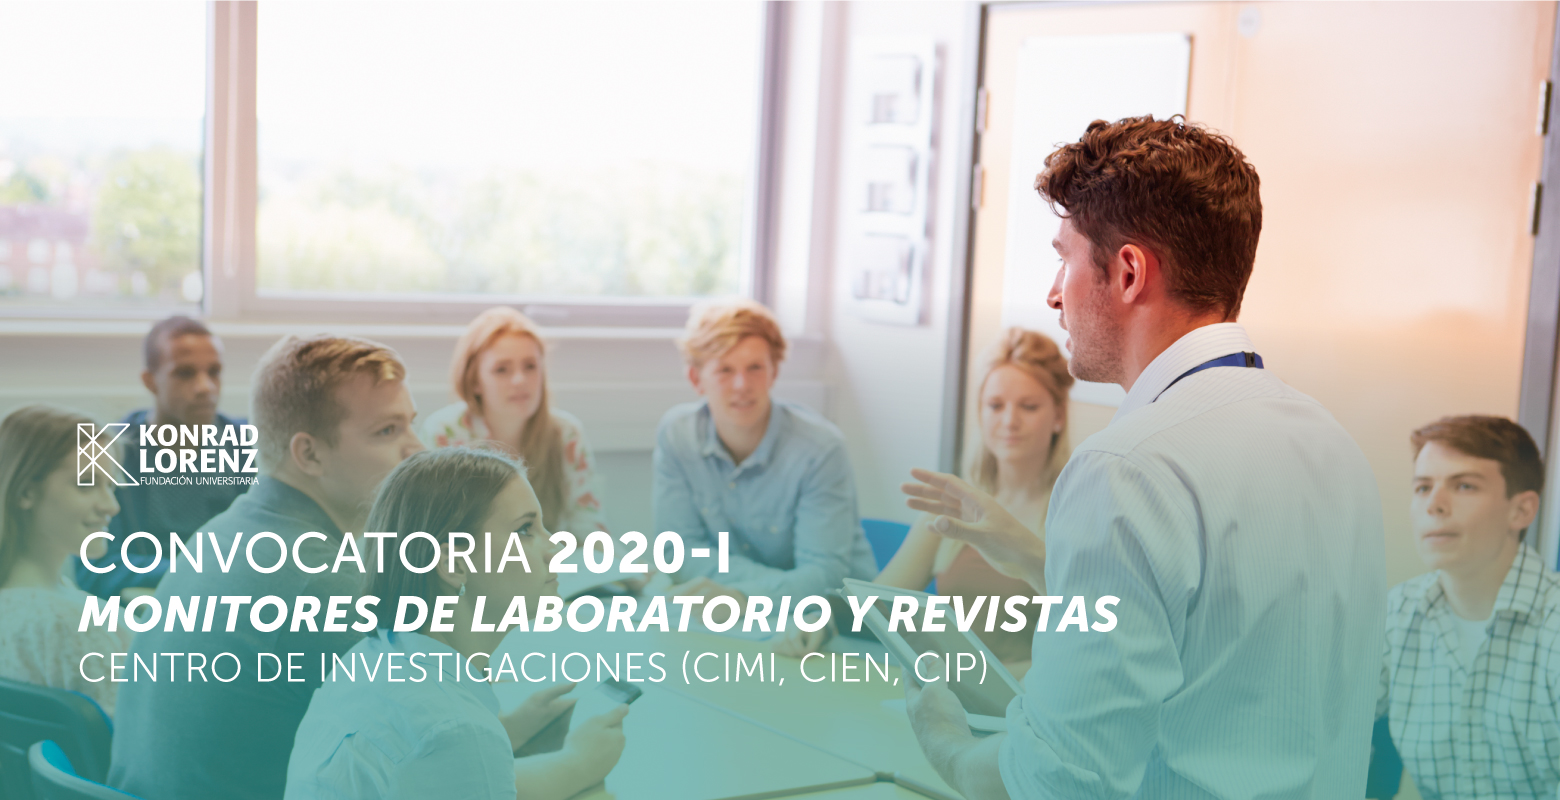 Convocatoria para Monitores de Laboratorio y Revistas 2020-I